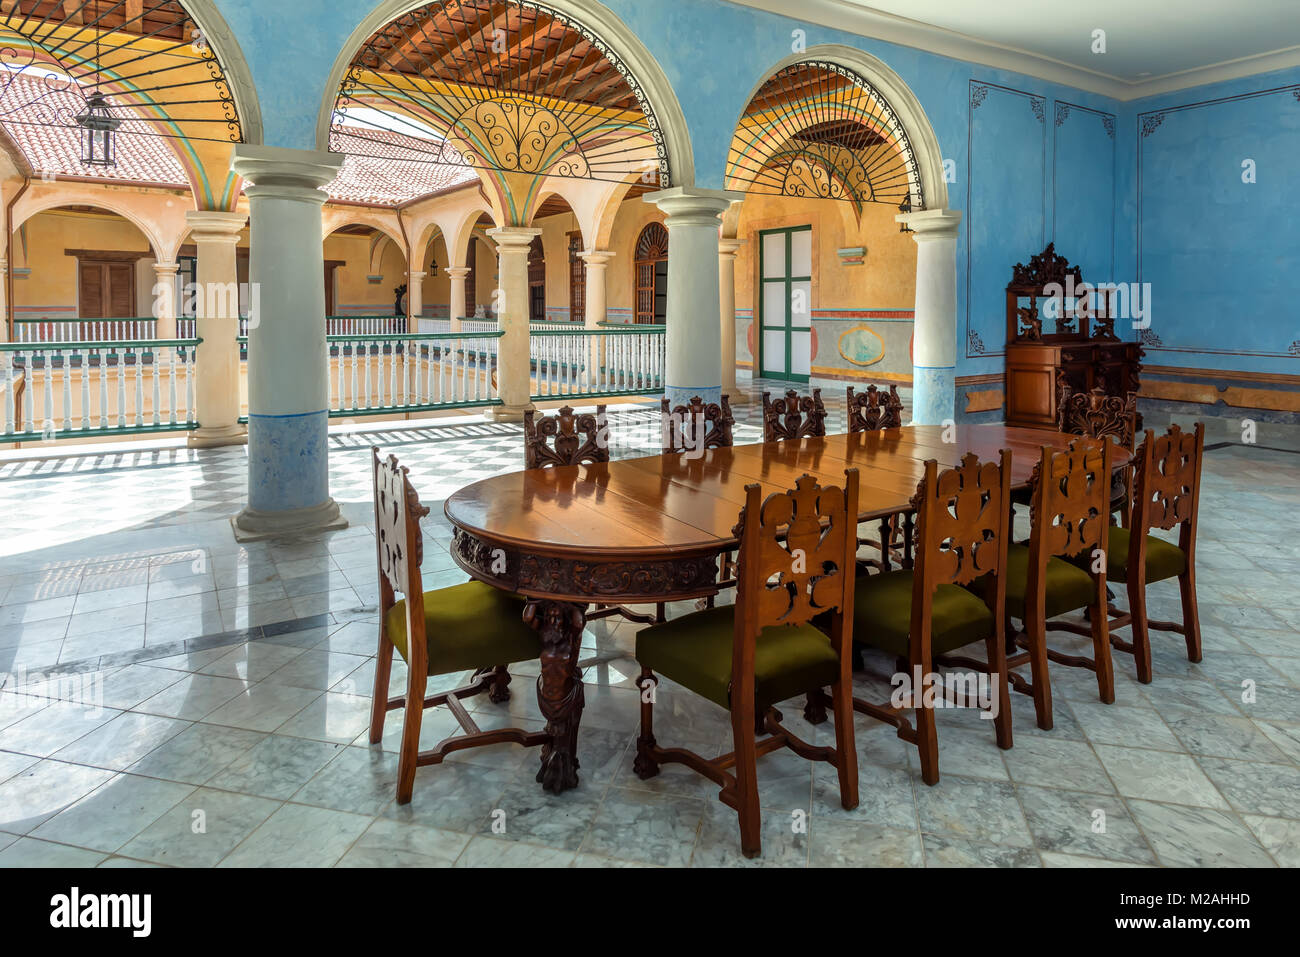 Blue hall with columns, brown, wooden table and carved chairs, marble floor and a view of the tiled roof in the - Stock Image